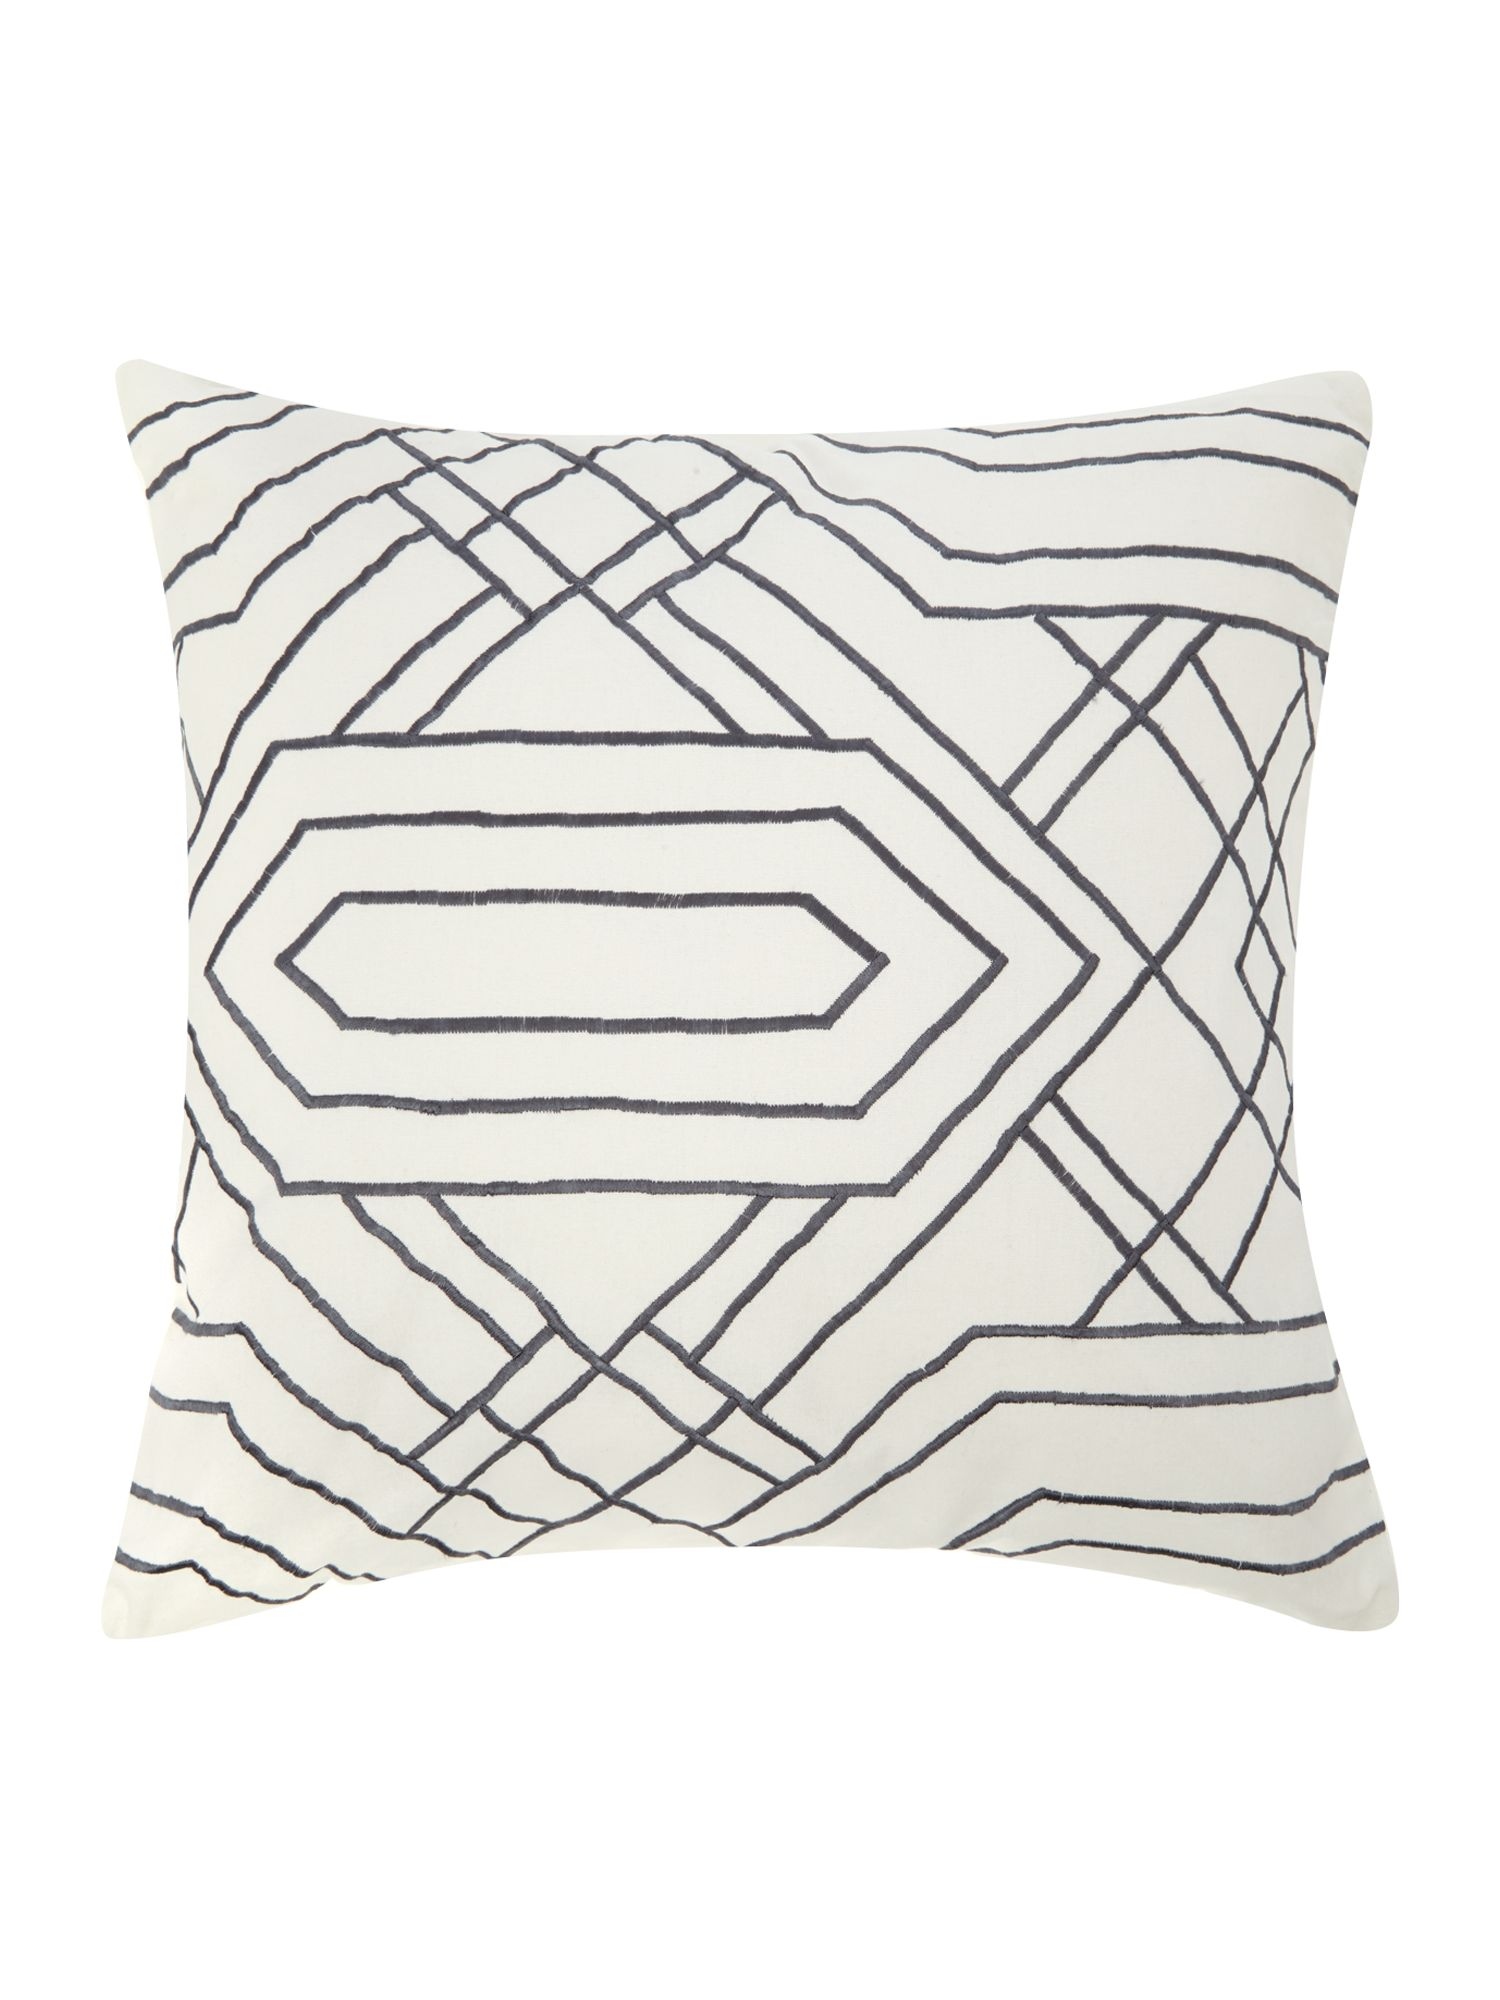 Grey diamond embroidered cushion